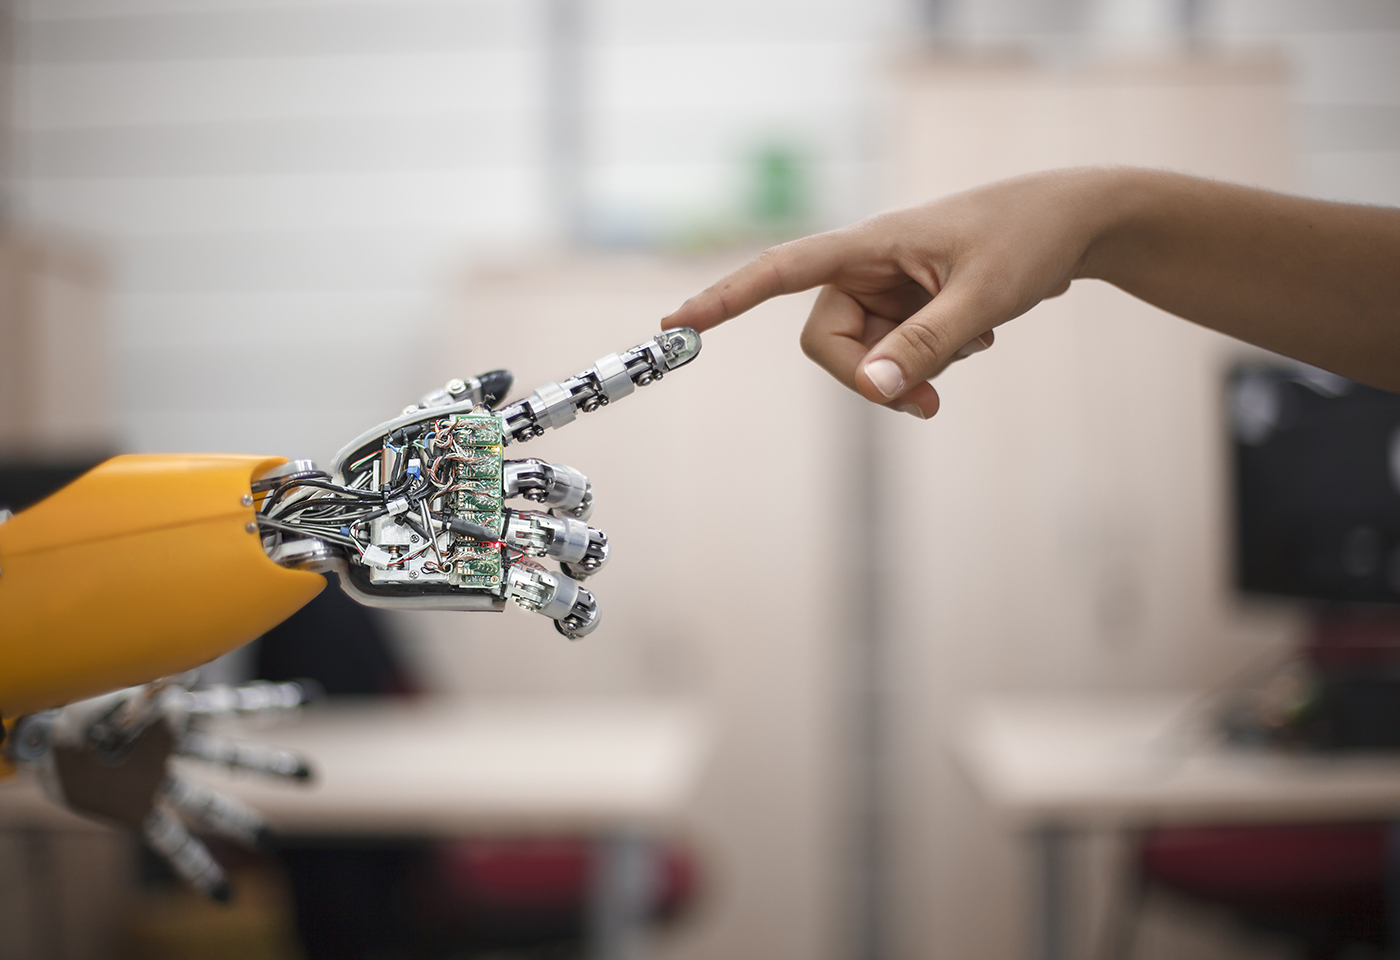 Robotic hand touching finger of human hand